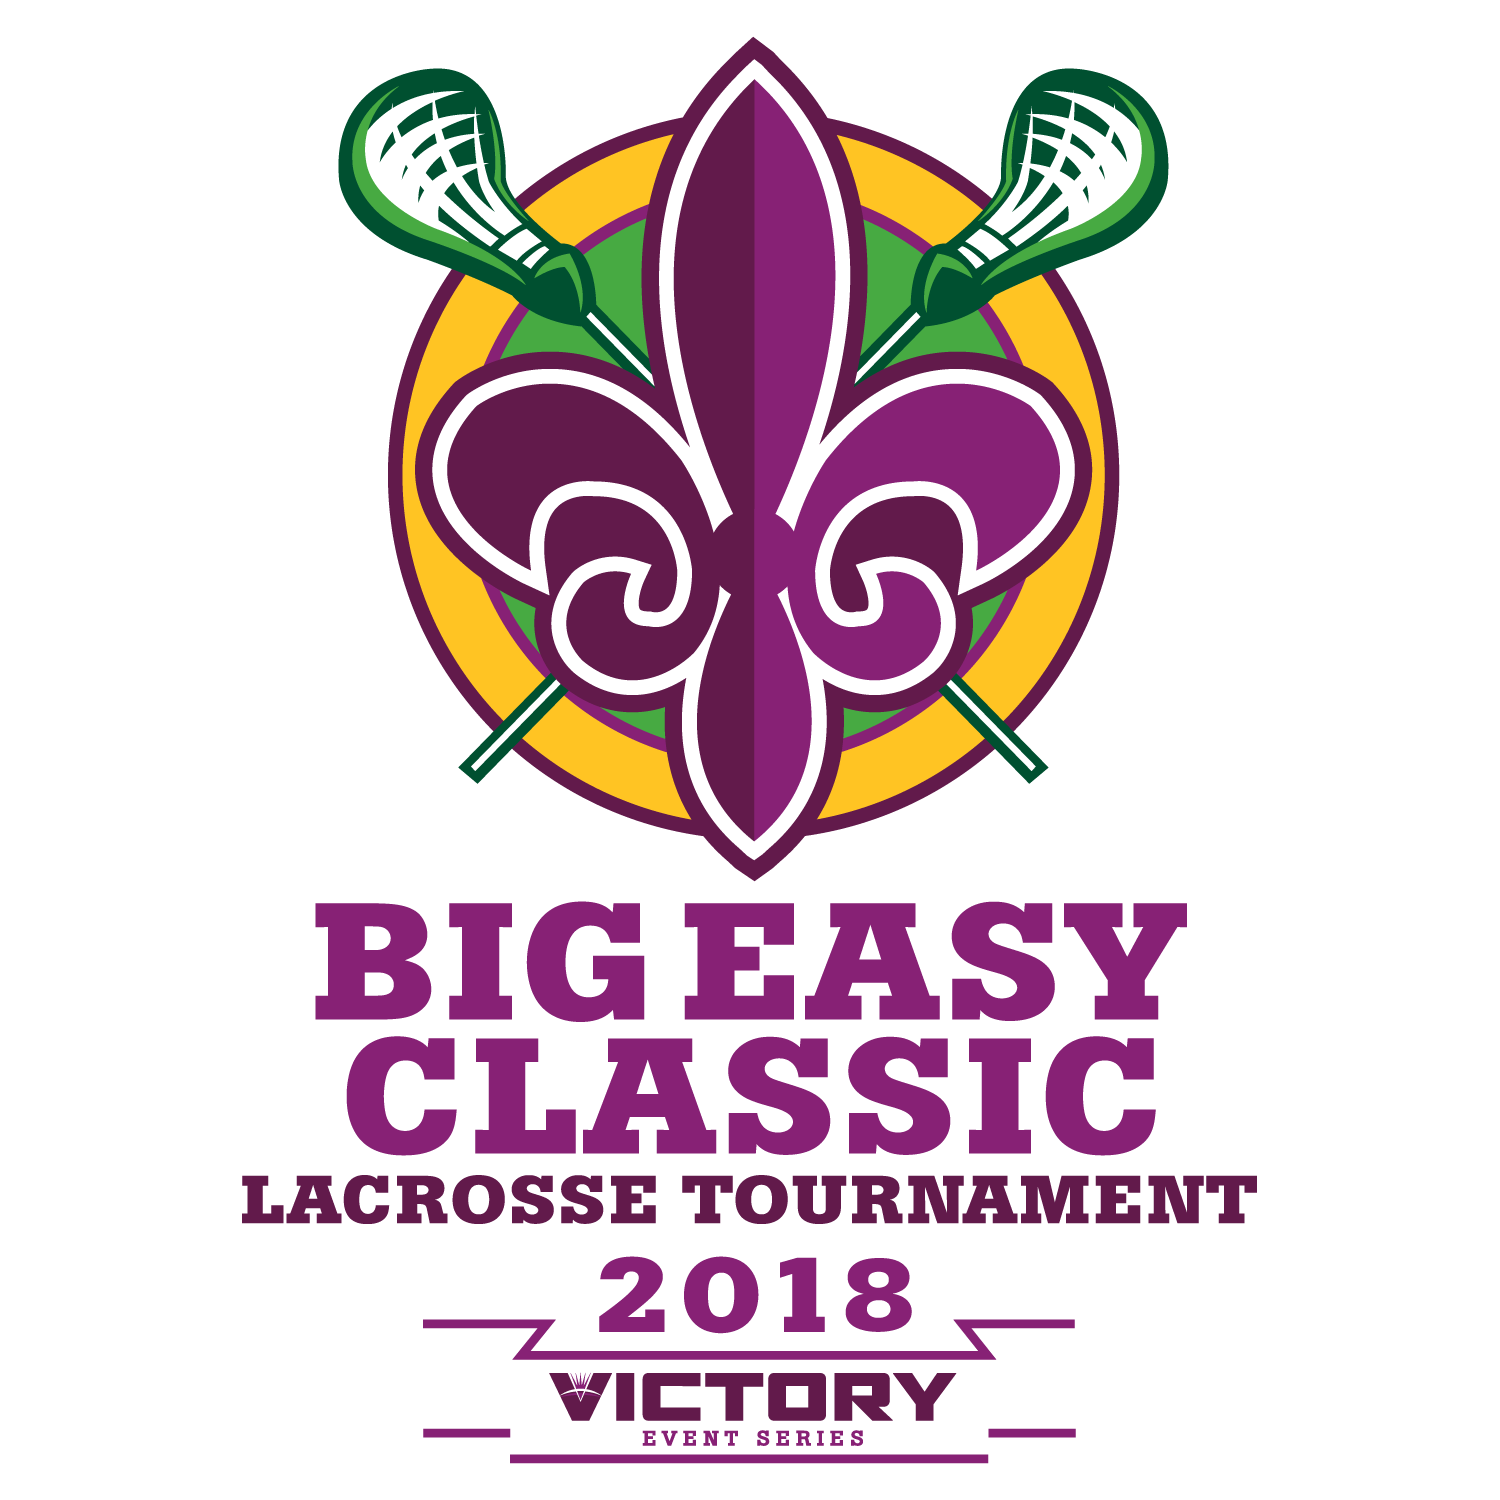 Big Easy Classic Lacrosse Tournament 2018 Logo